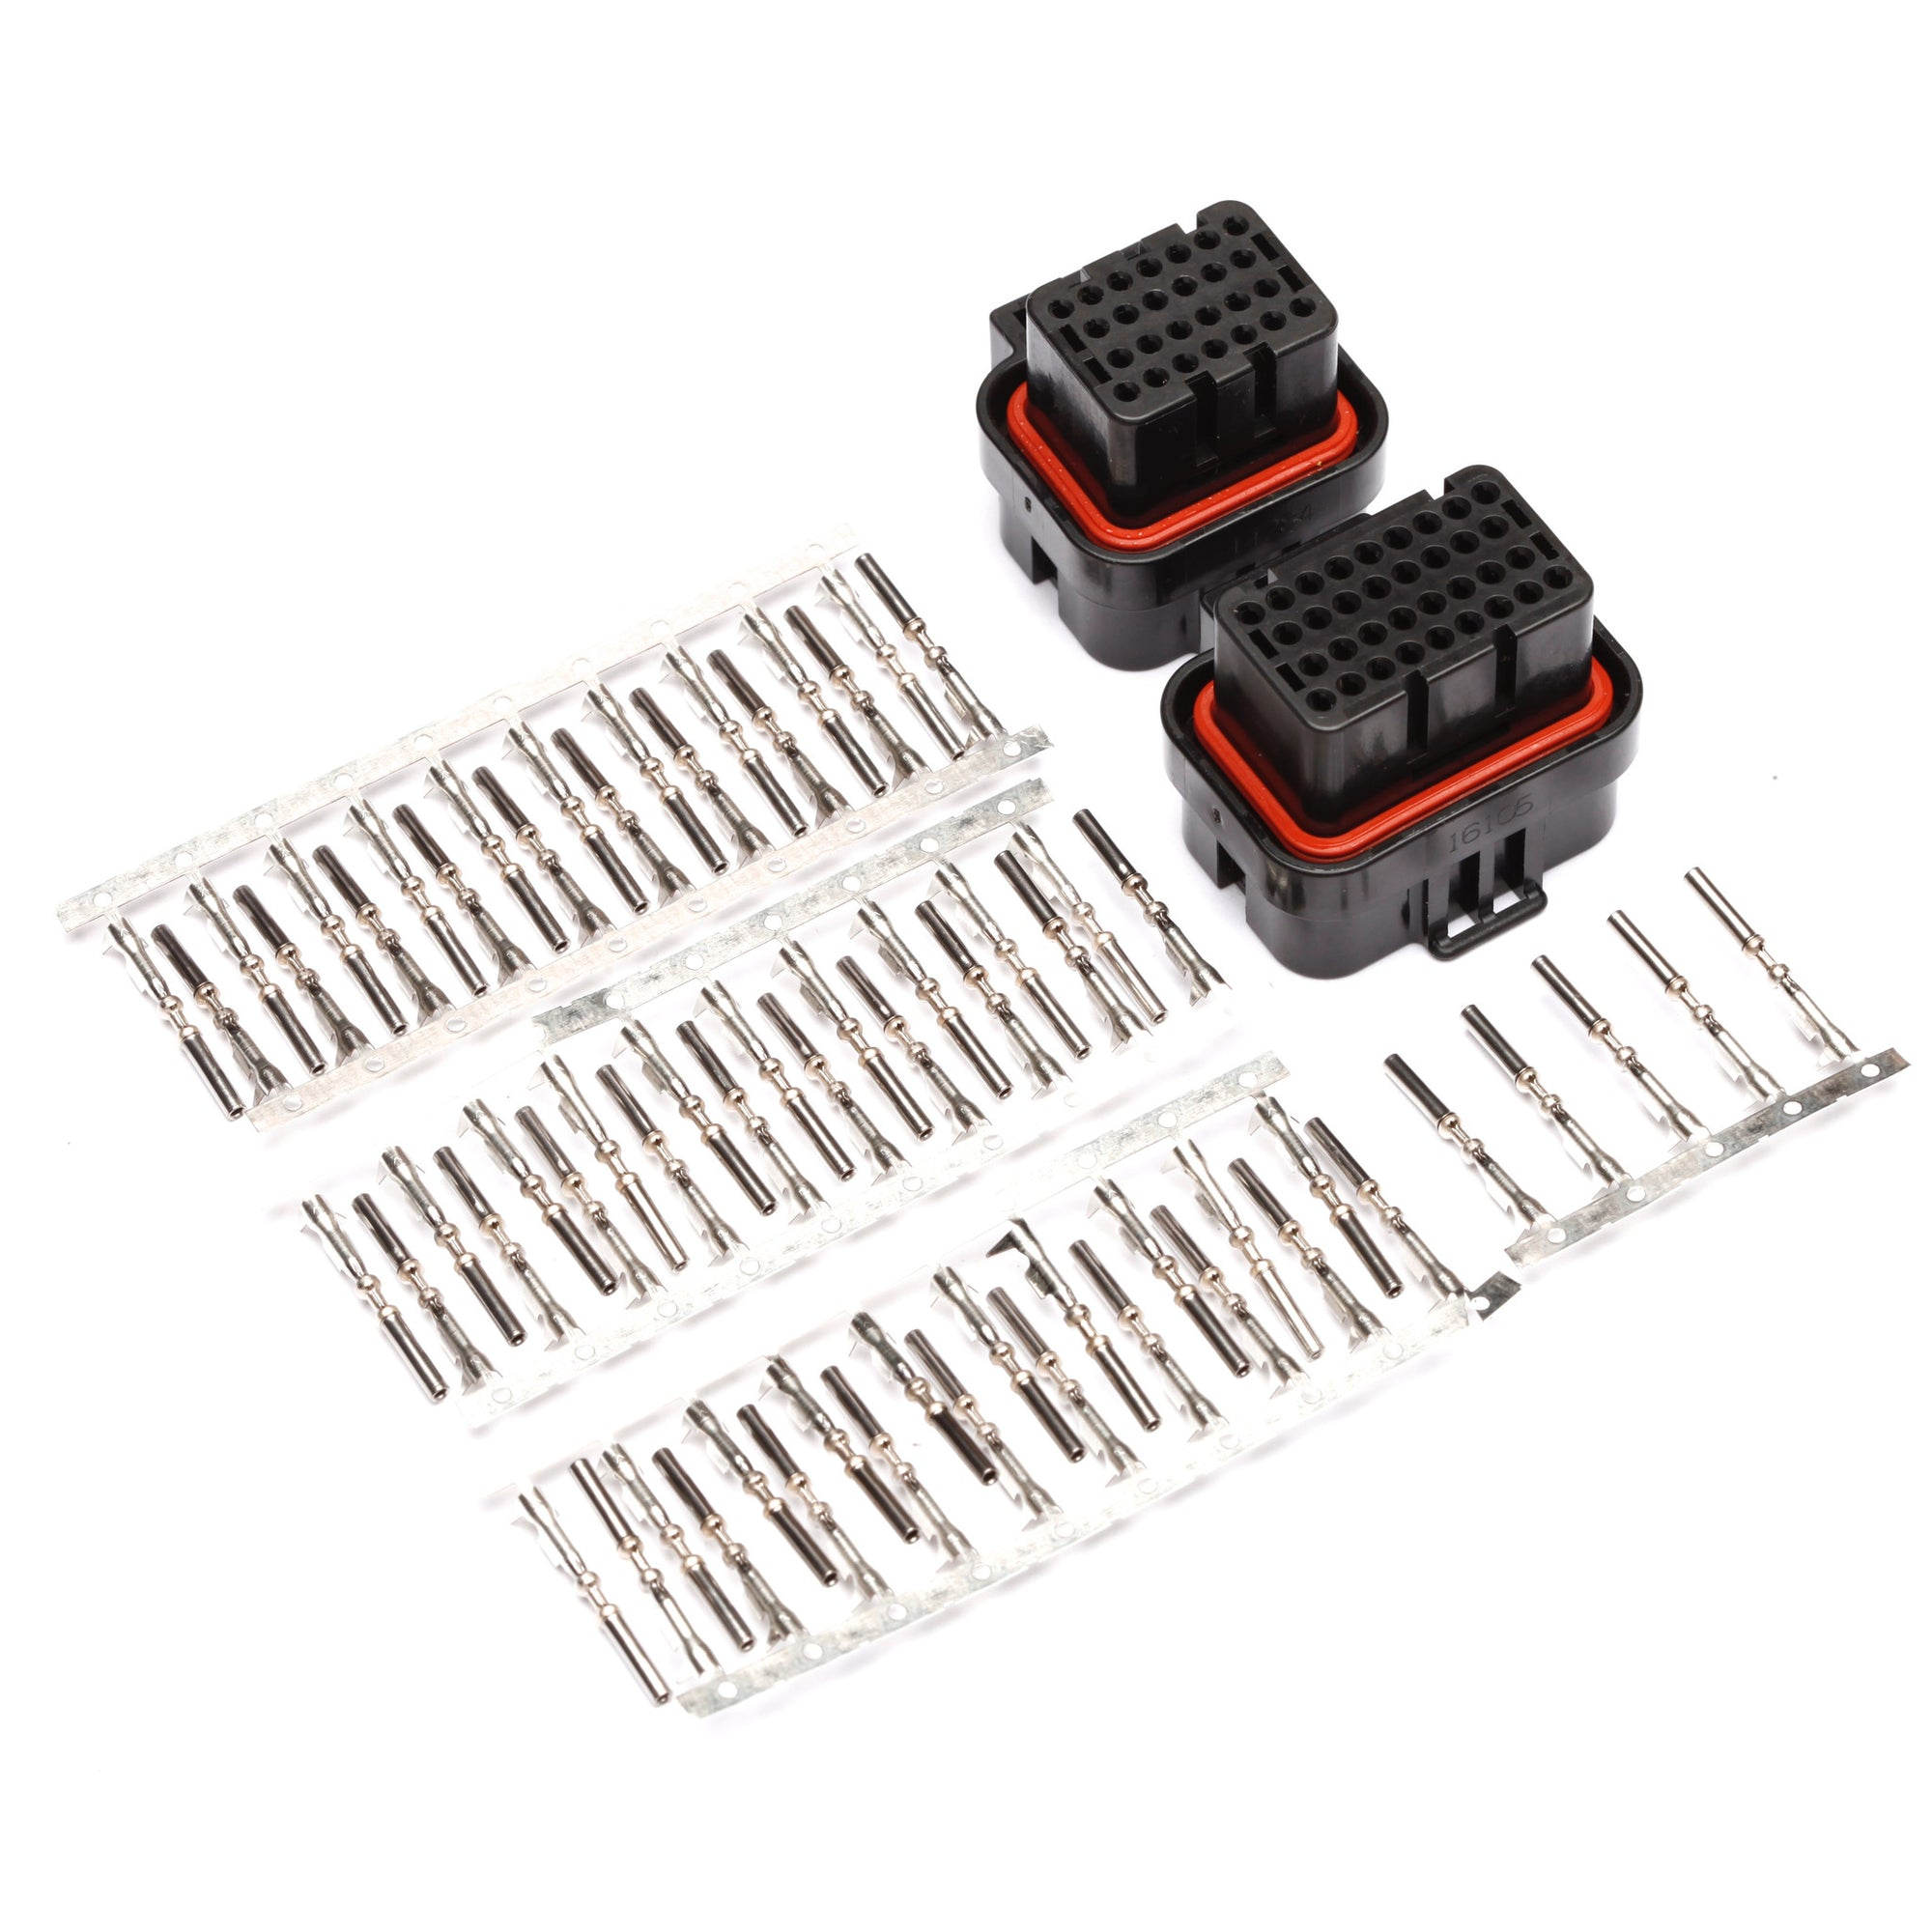 Connectors - MoTeC M150 C/D Connector Kit